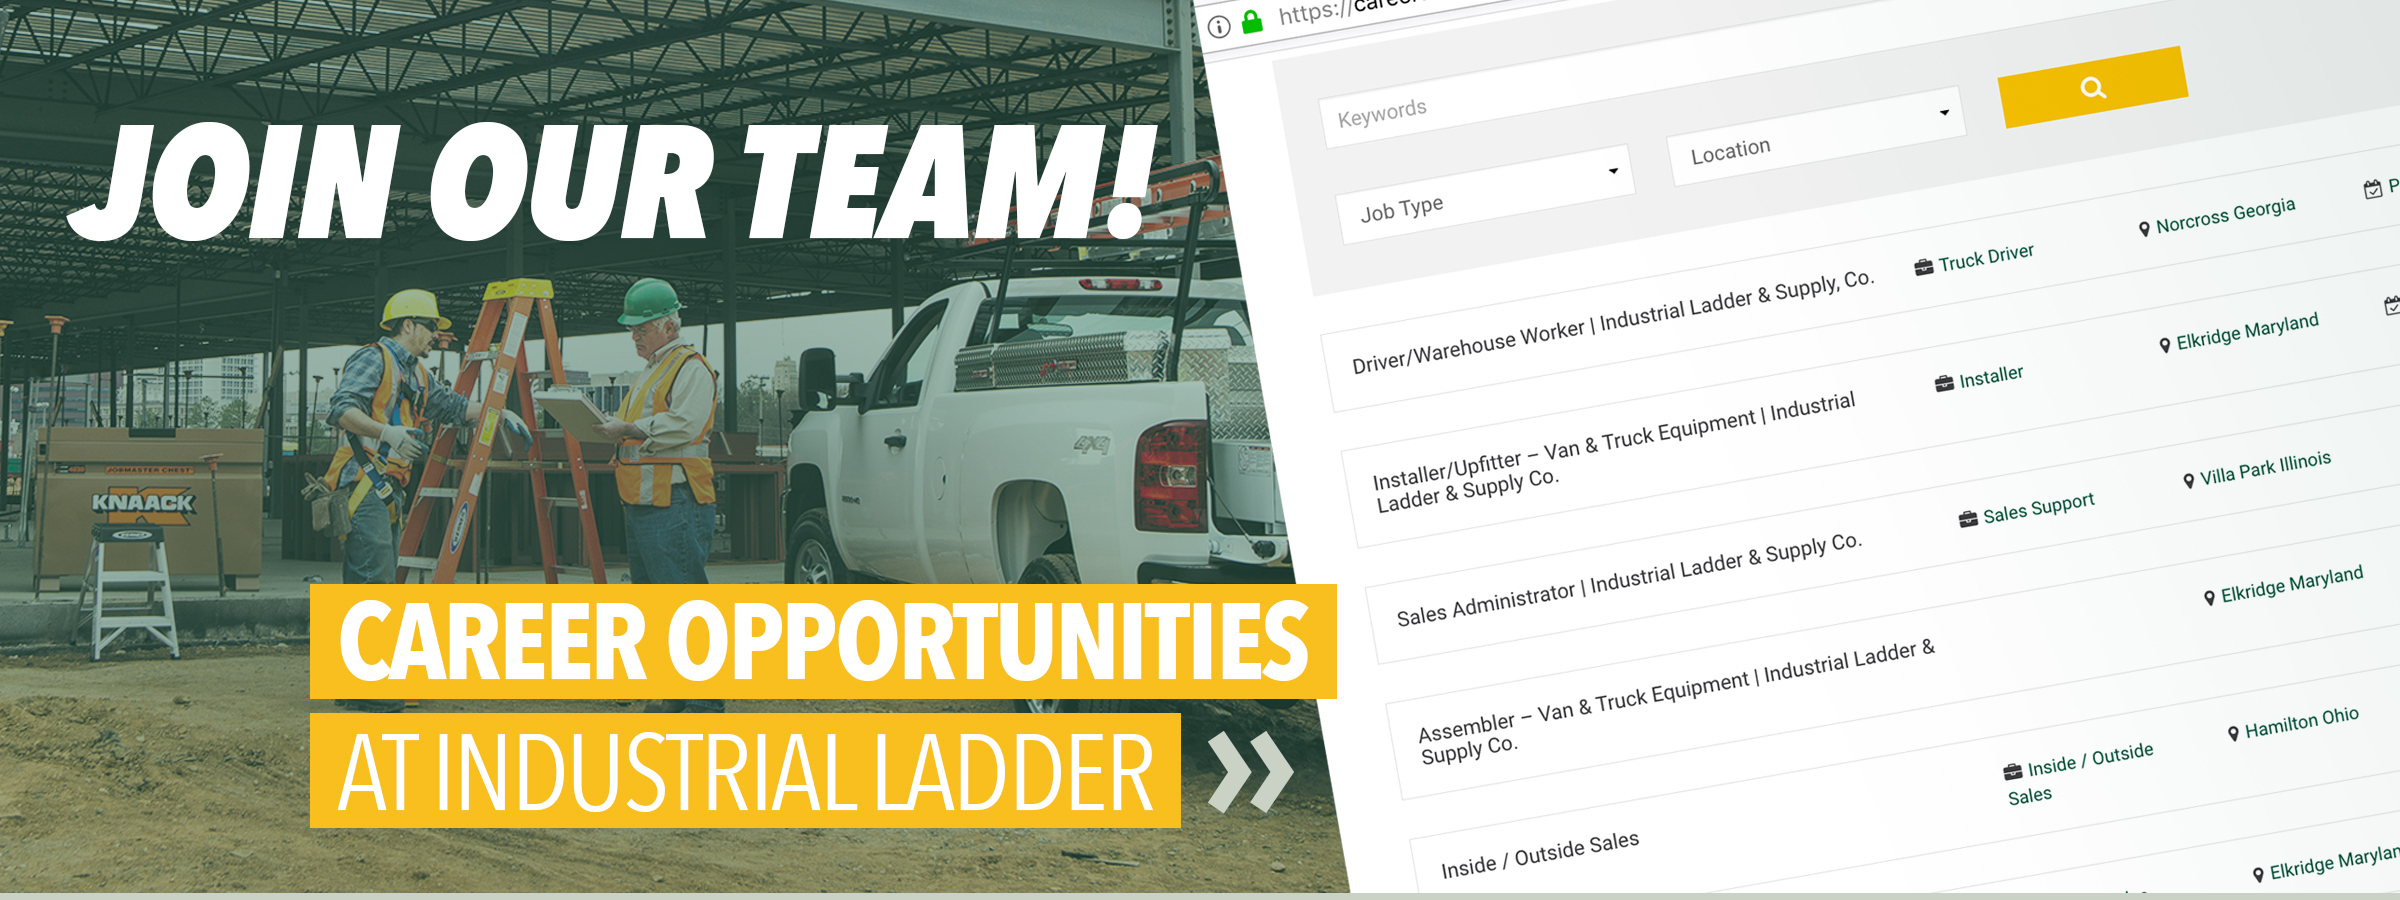 Careers at Industrial Ladder